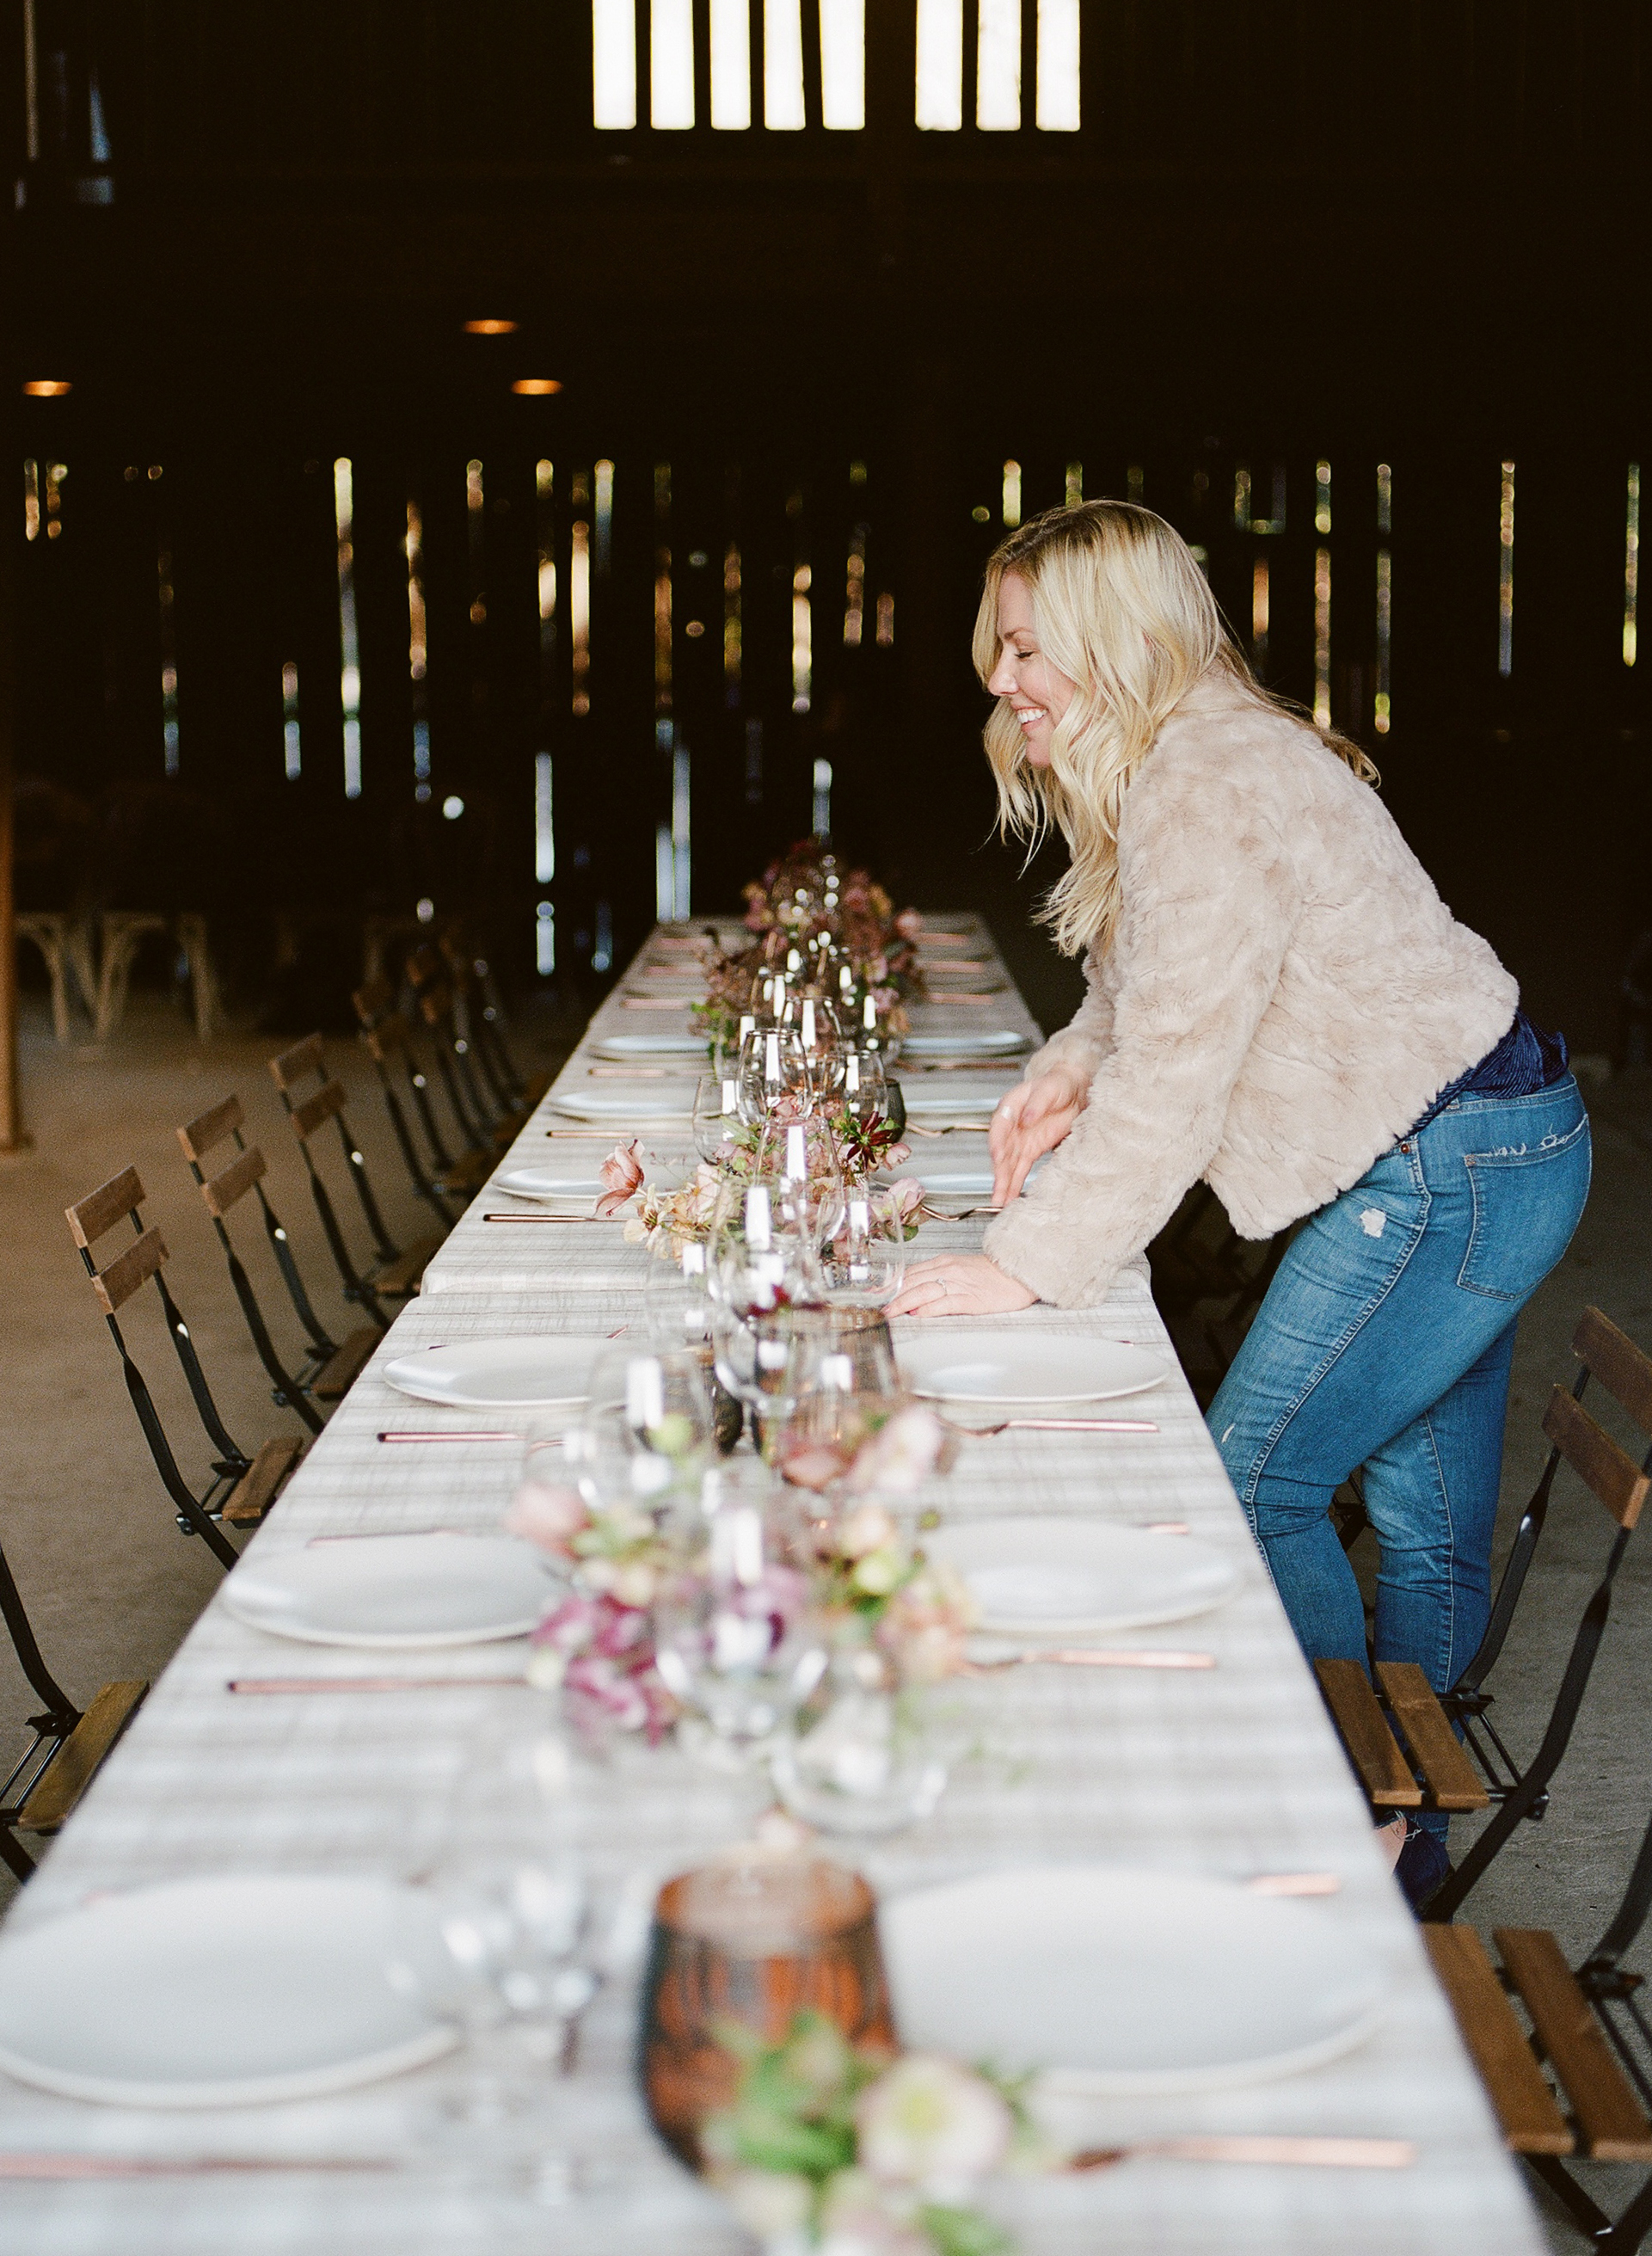 Anna Delores Photography_Wedding Styling Workshop 2019-000100240006.jpg